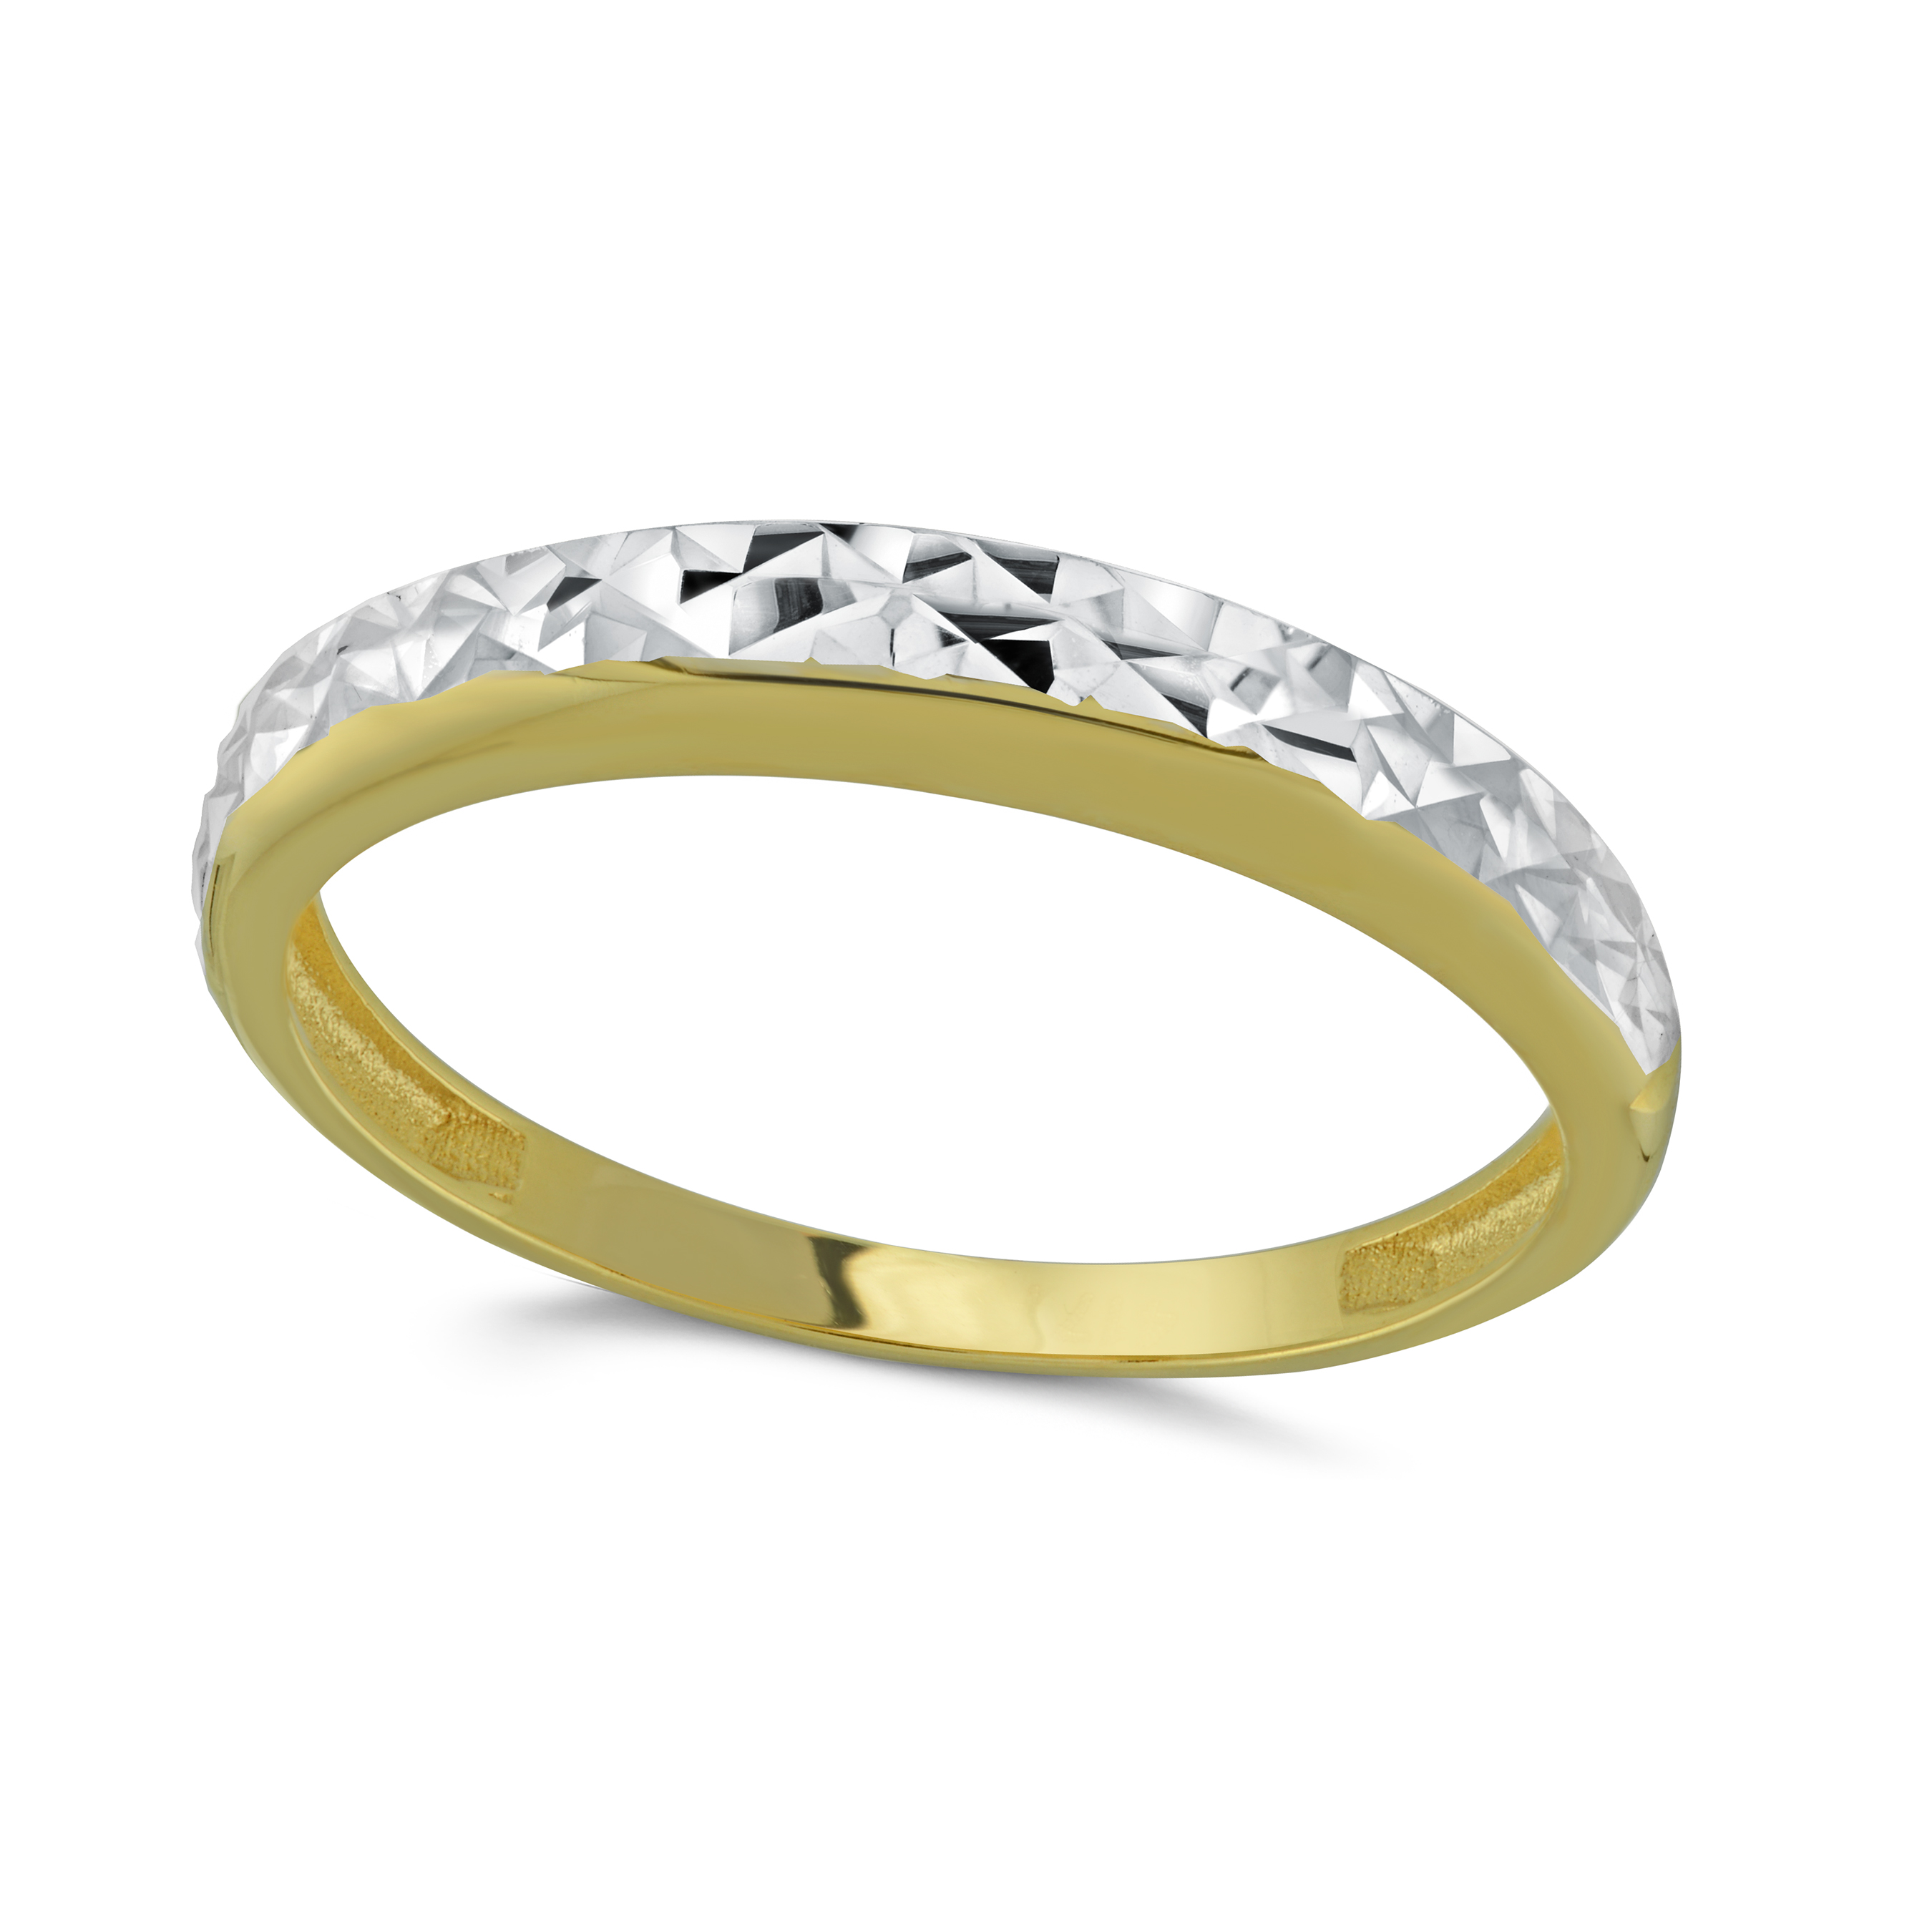 Women's Ring - 10K 2-tone gold (yellow and white)